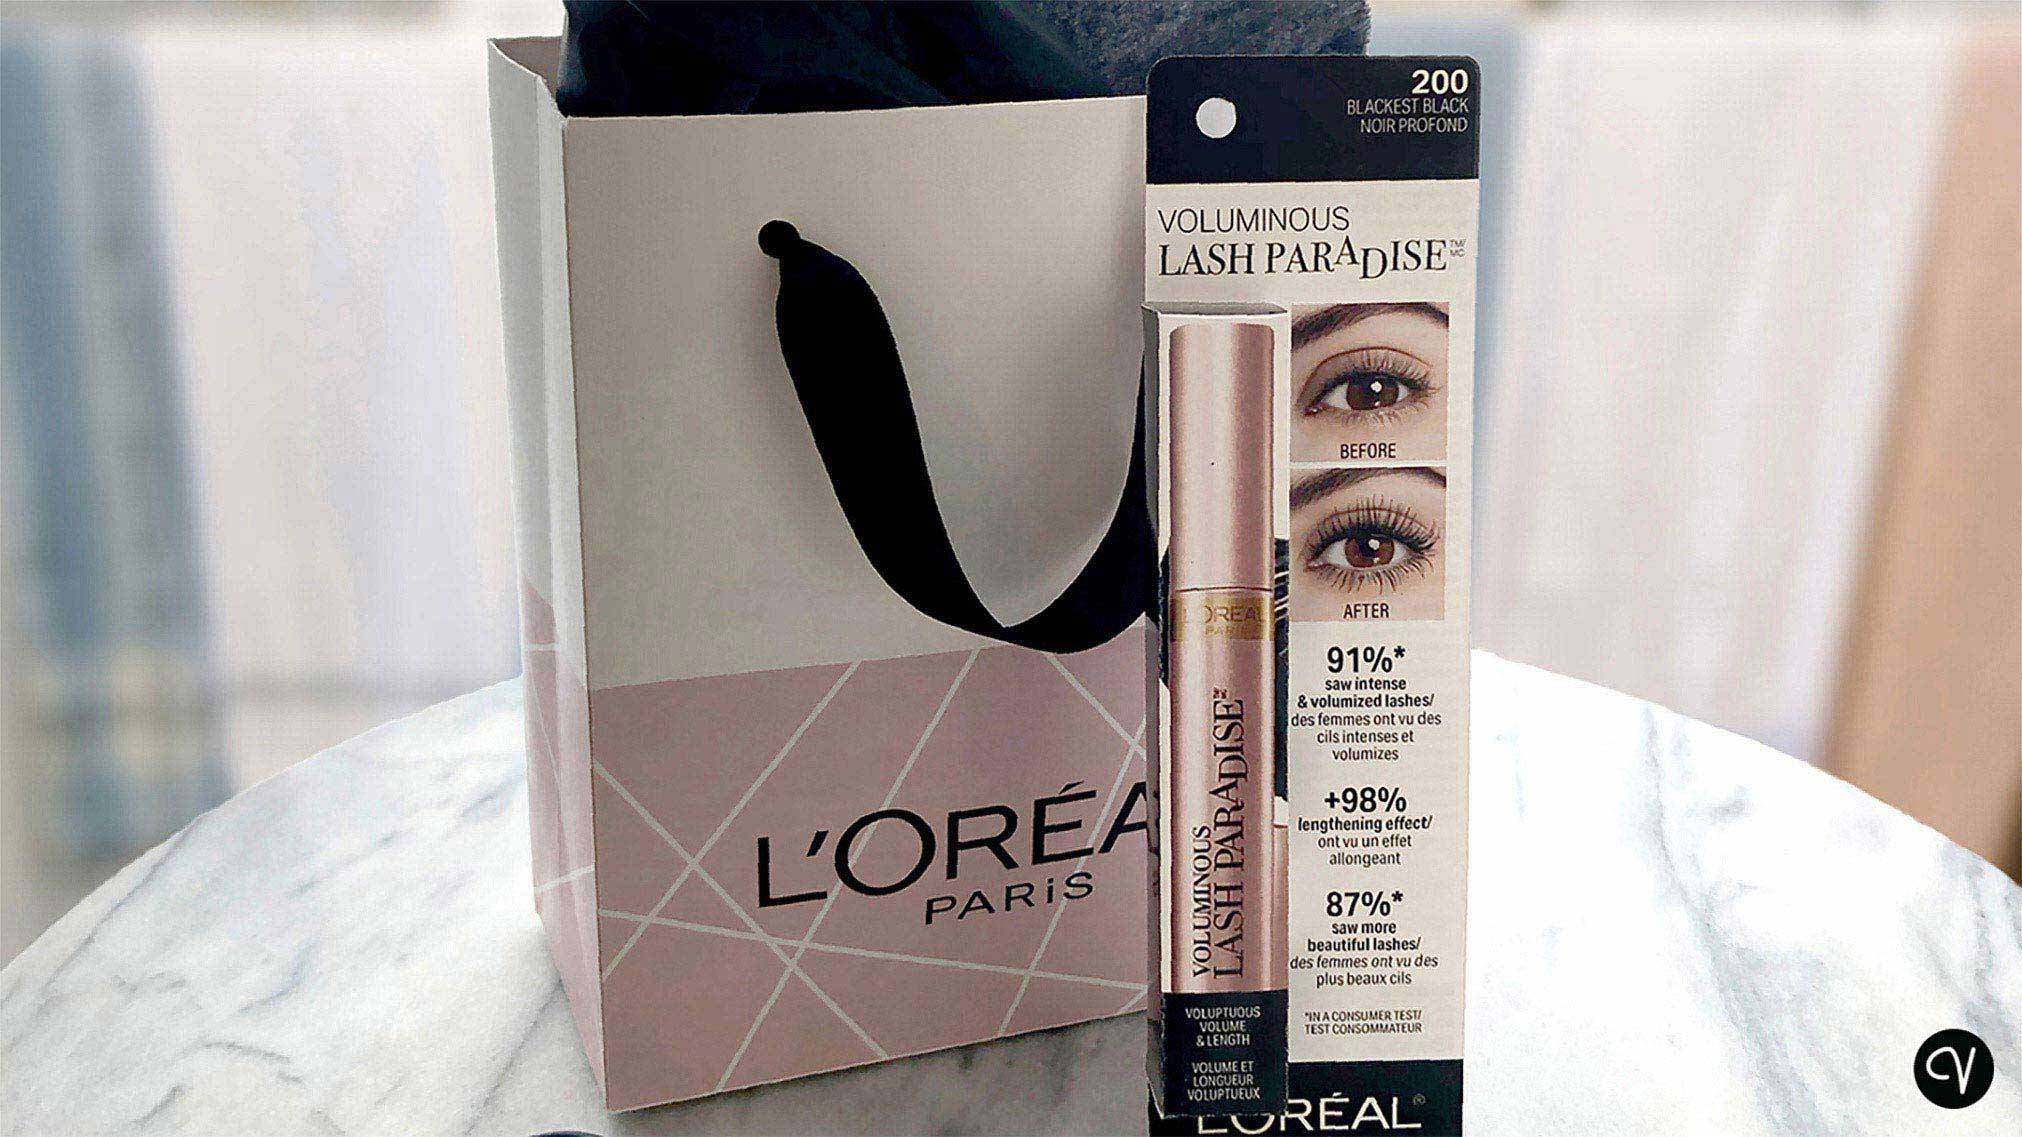 L'Oreal's best-selling mascara uses the most plastic packaging of their entire product offering. This plastic-free package concept maintains brand identity while increasing overall readability.